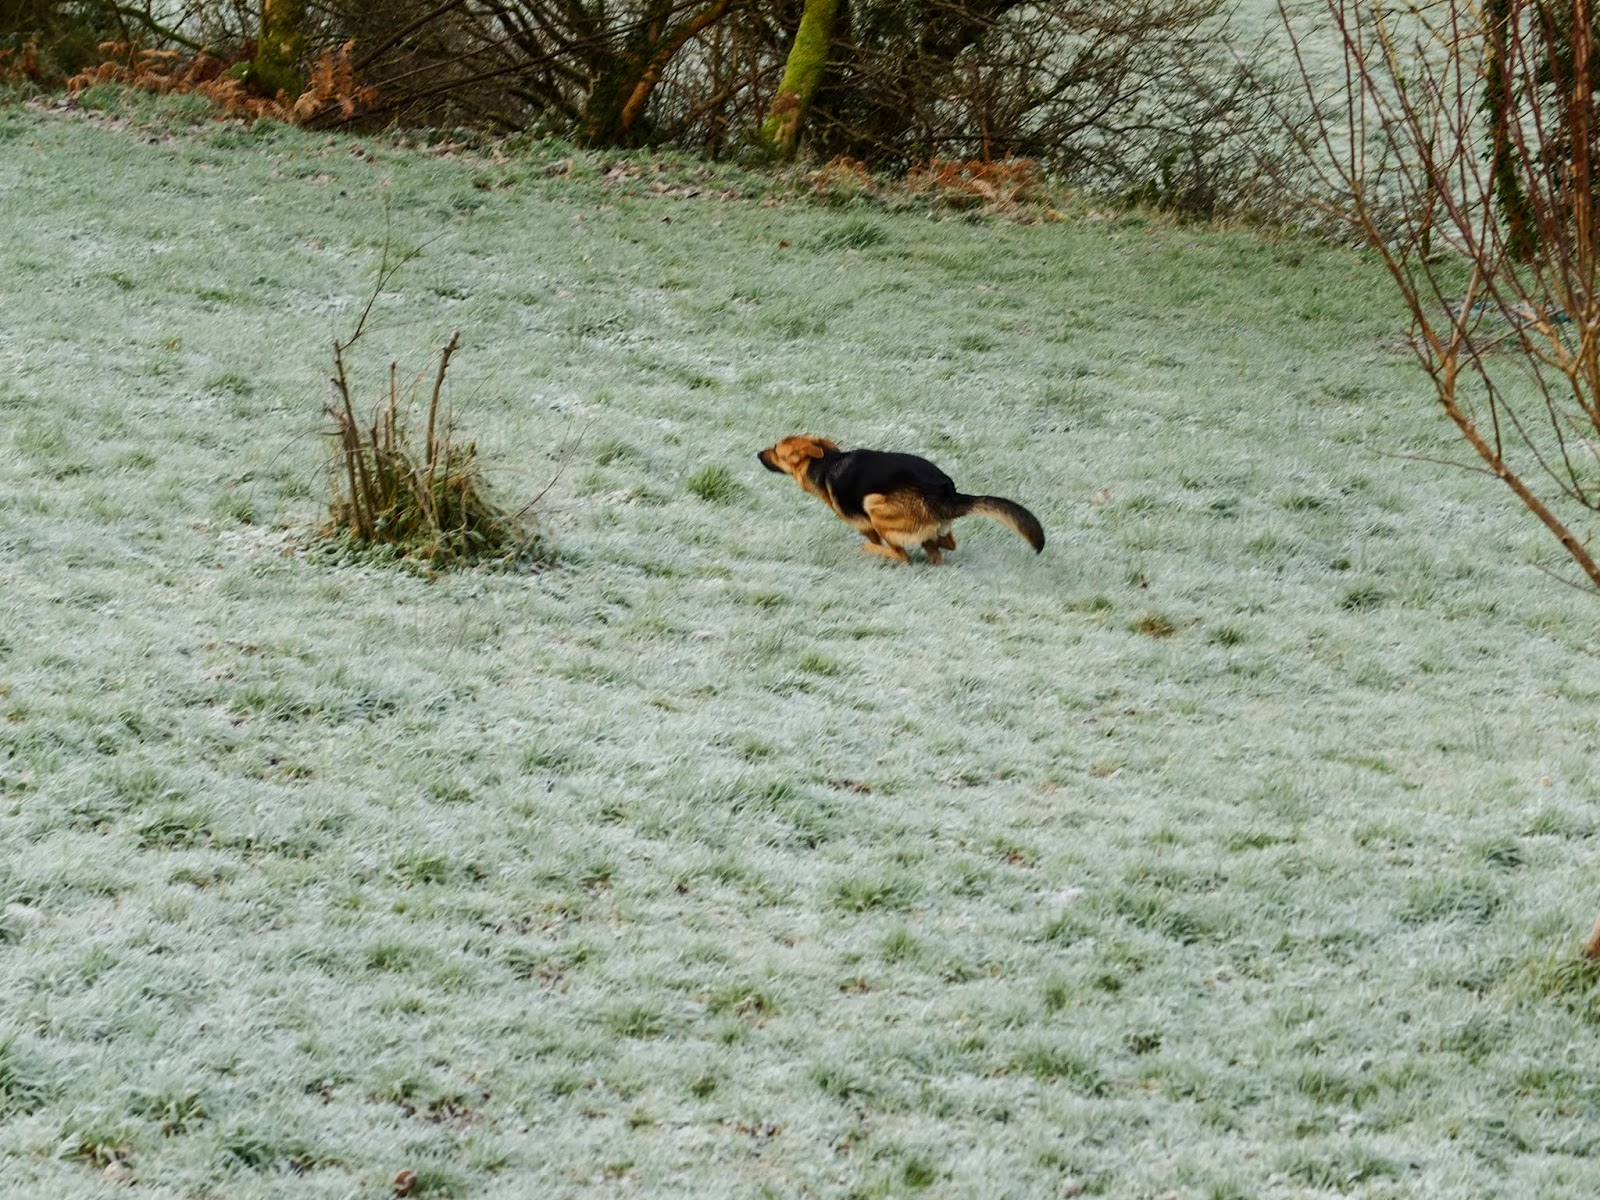 A German Shepherd scooting around on frosty grass.